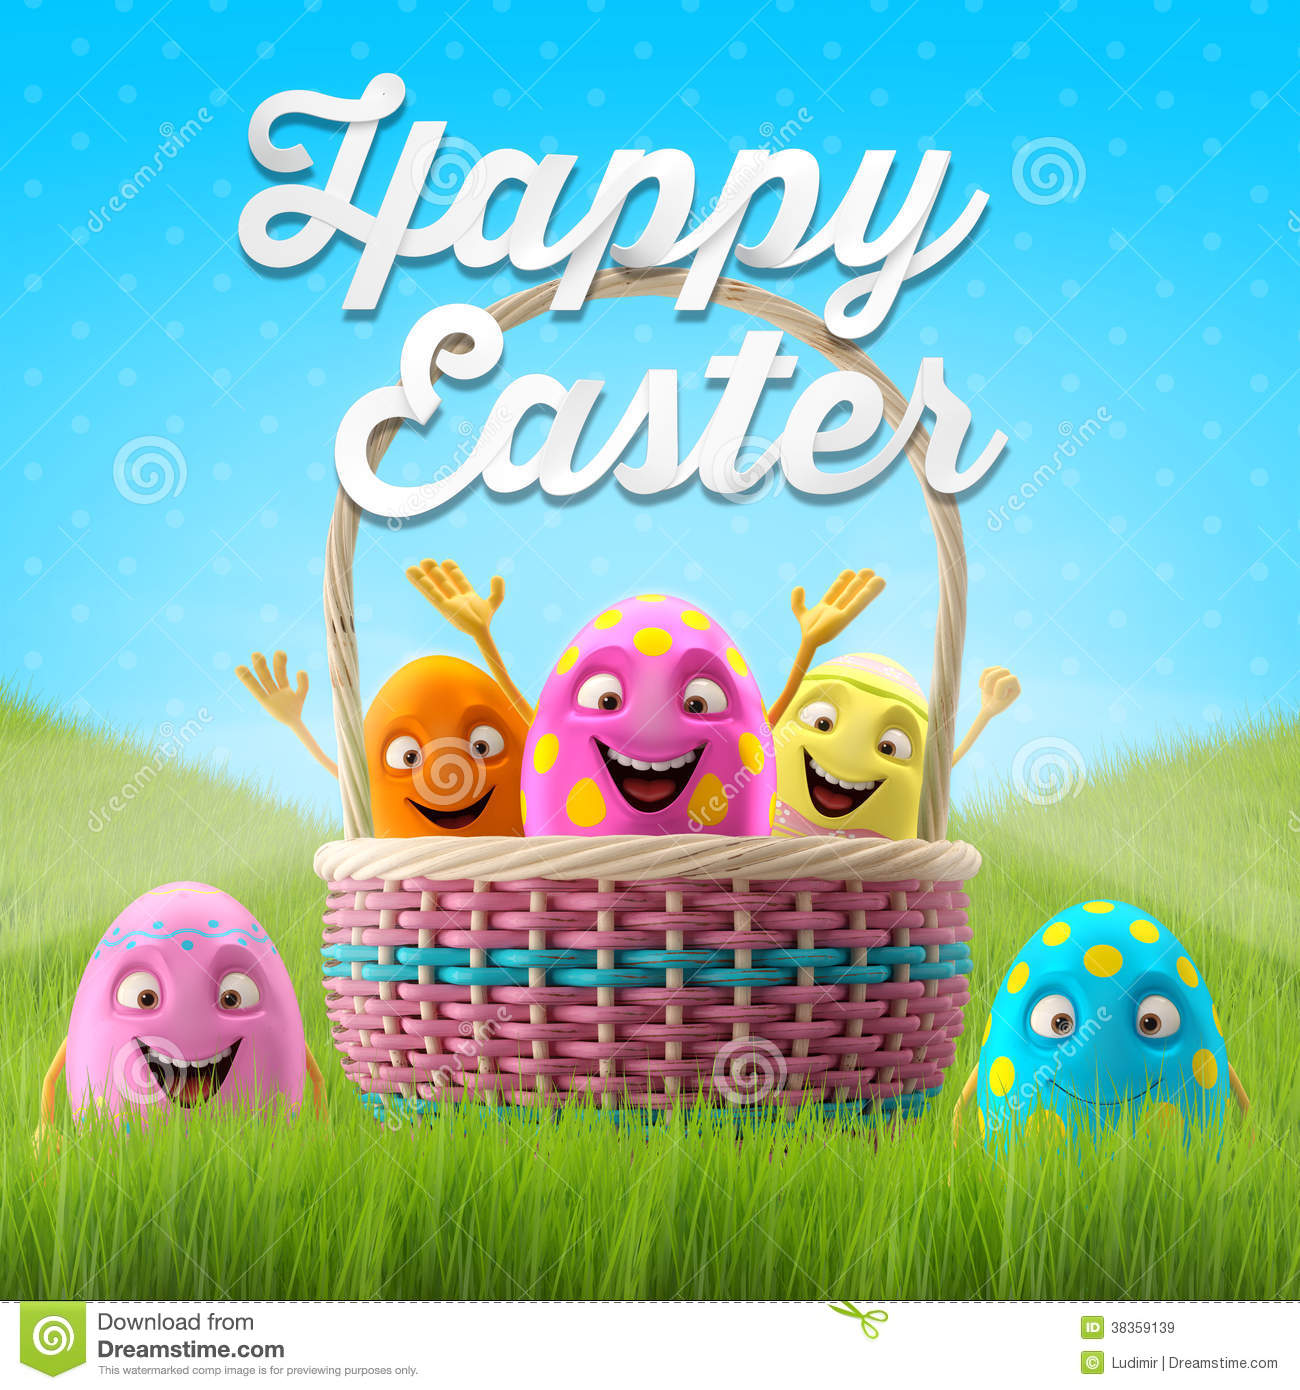 Happy Easter Eggs Merry 3D Set Spring Series Cartoon Objects Banner Postcard Fresh Event